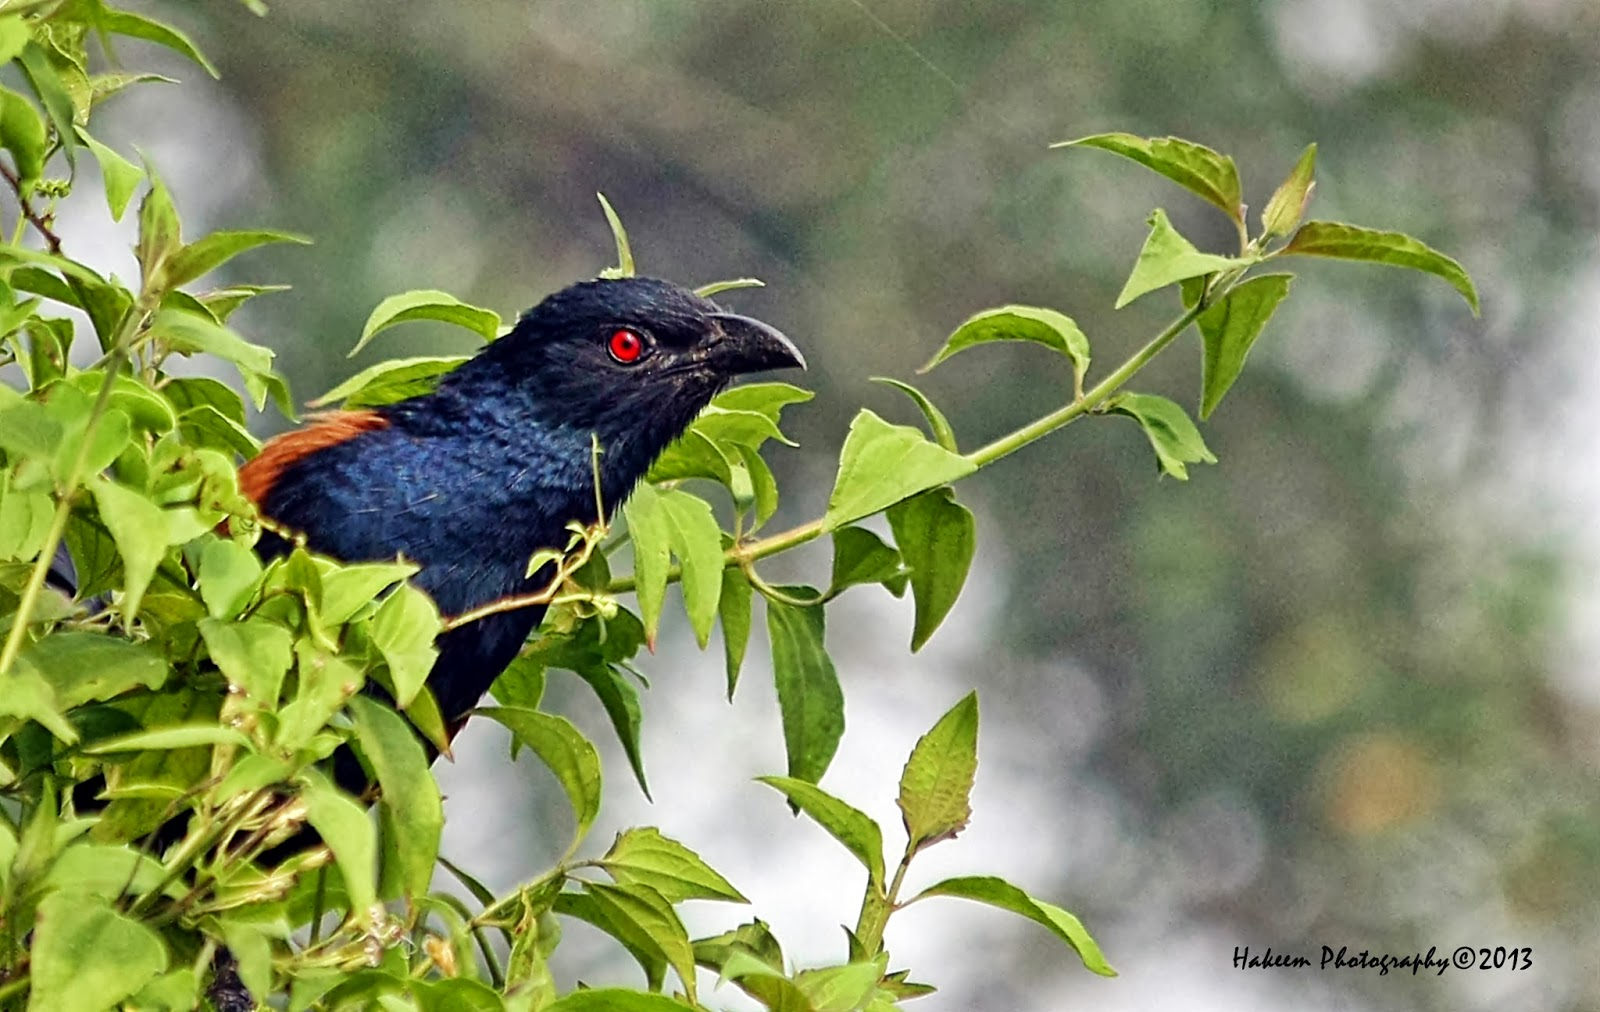 The Lesser Coucal Bird